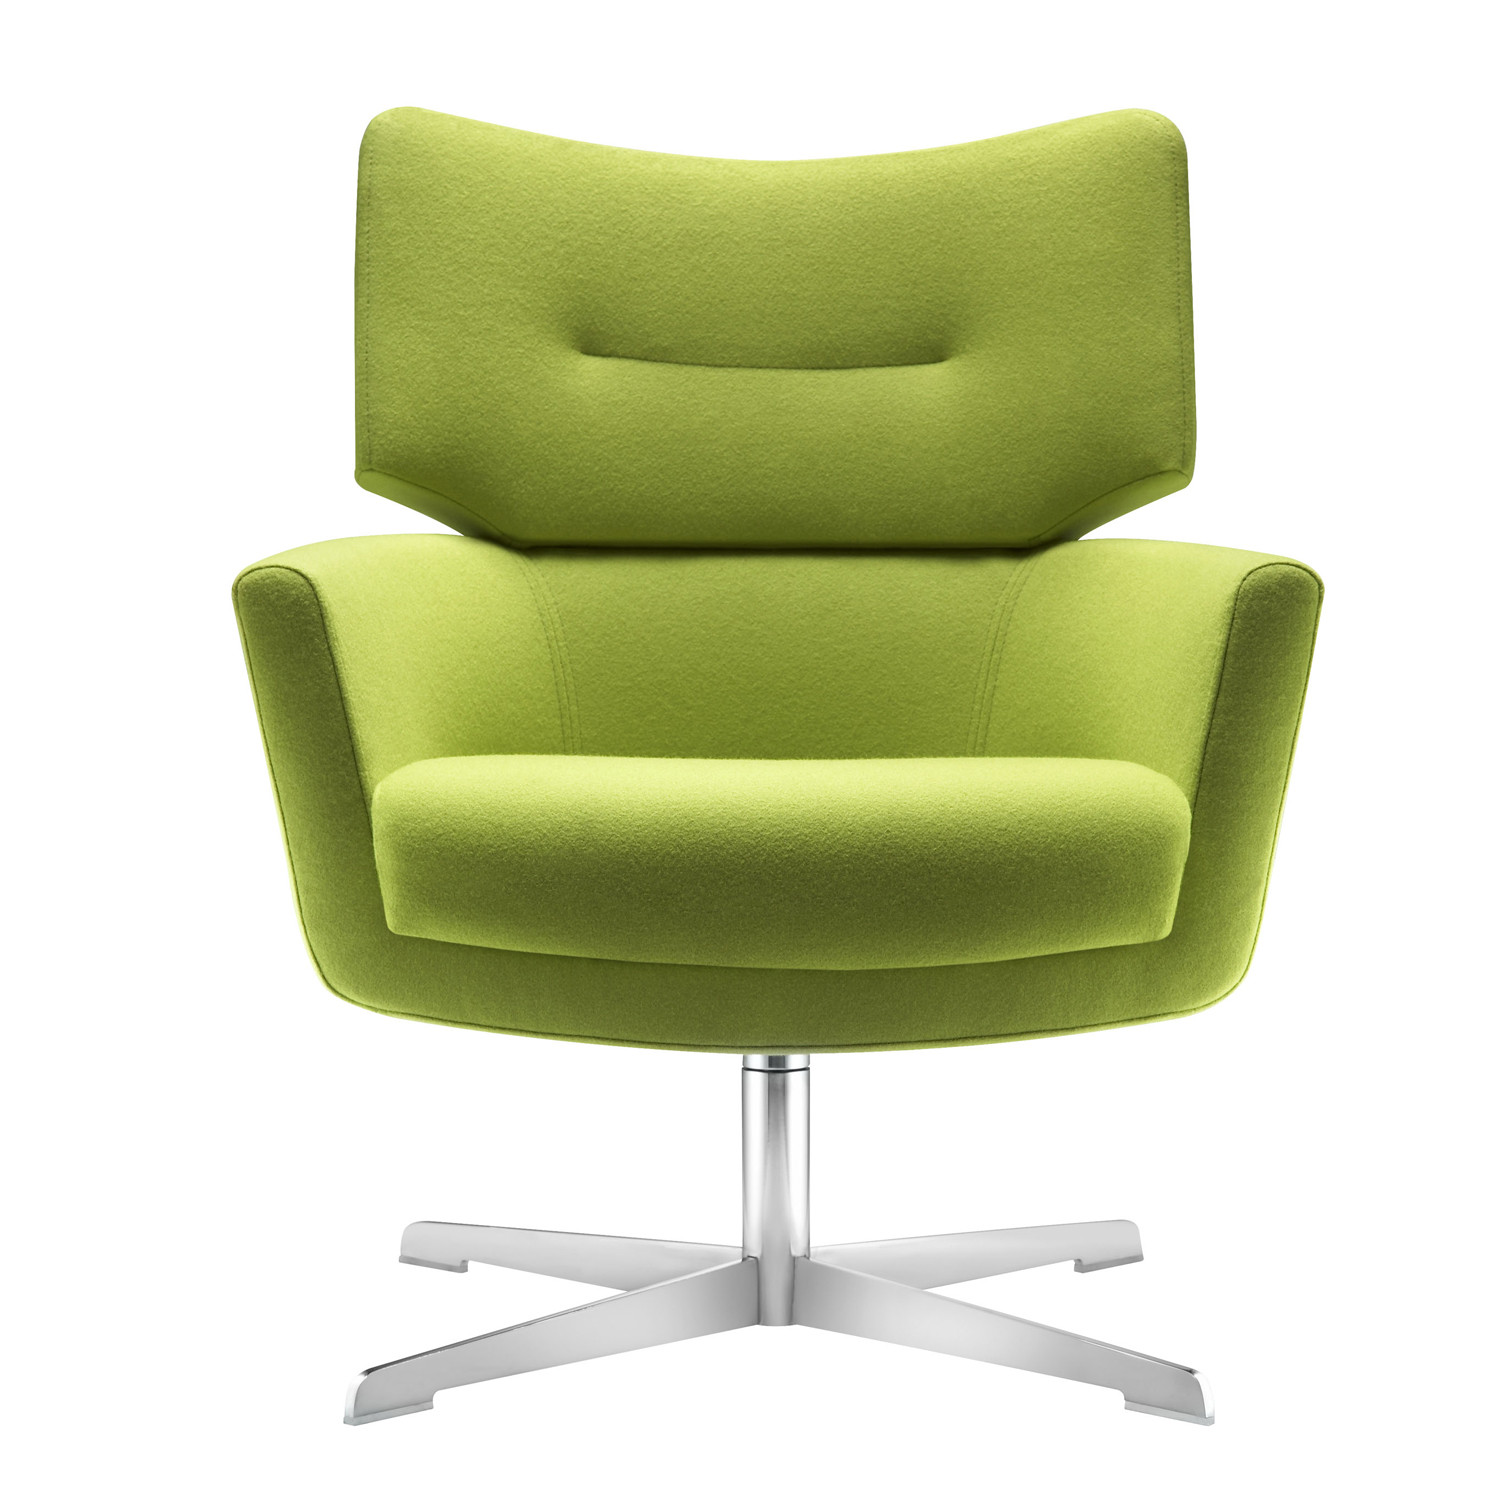 Kala Lounge High Back Swivel Chair